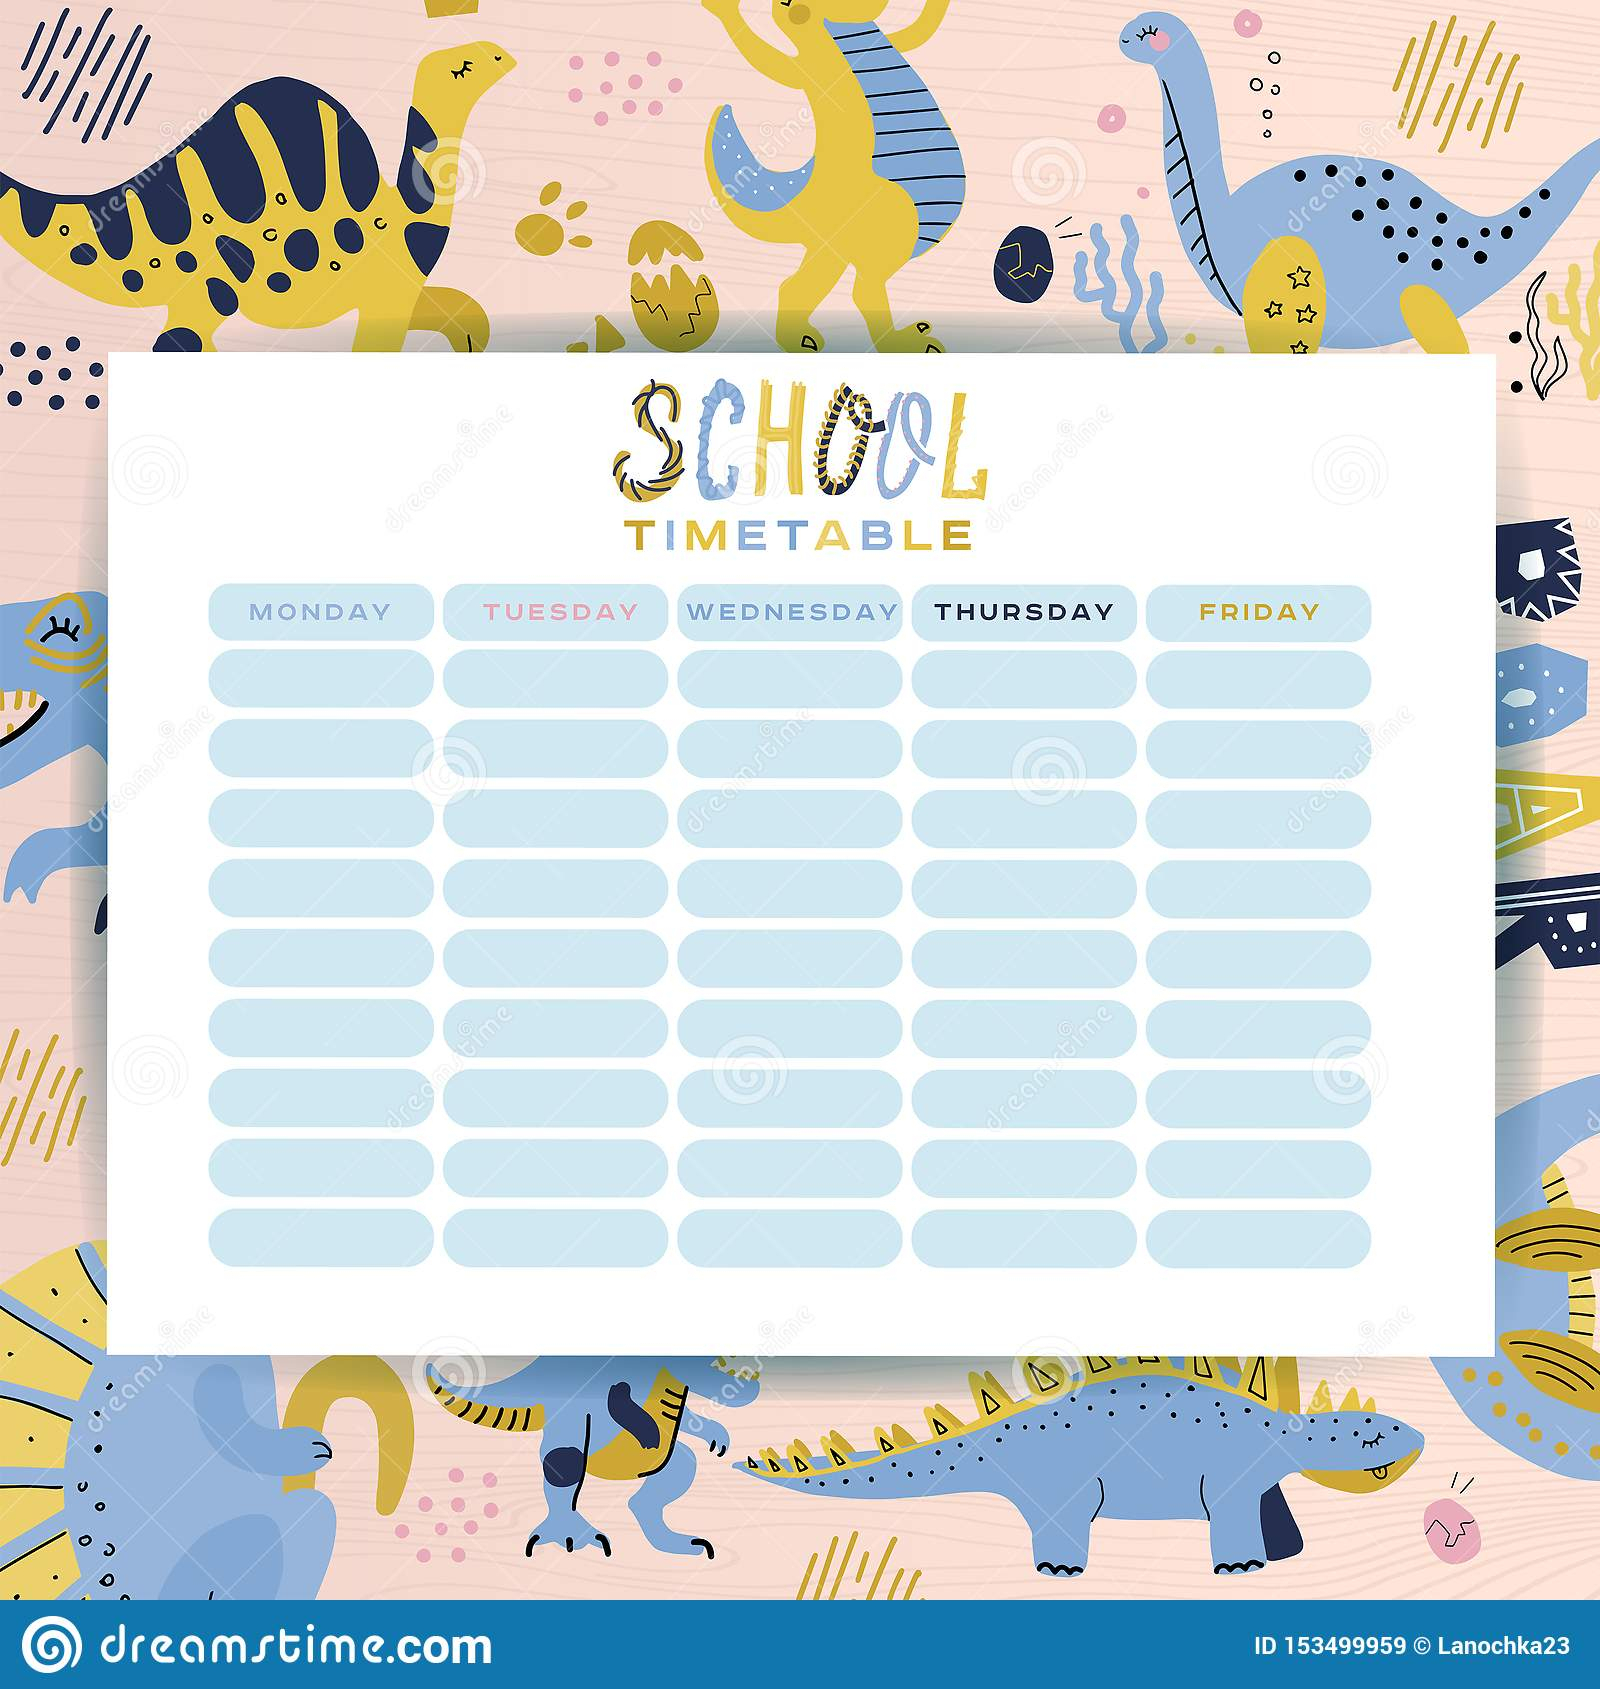 Template School Timetable. Schedule Of Lessons In The School